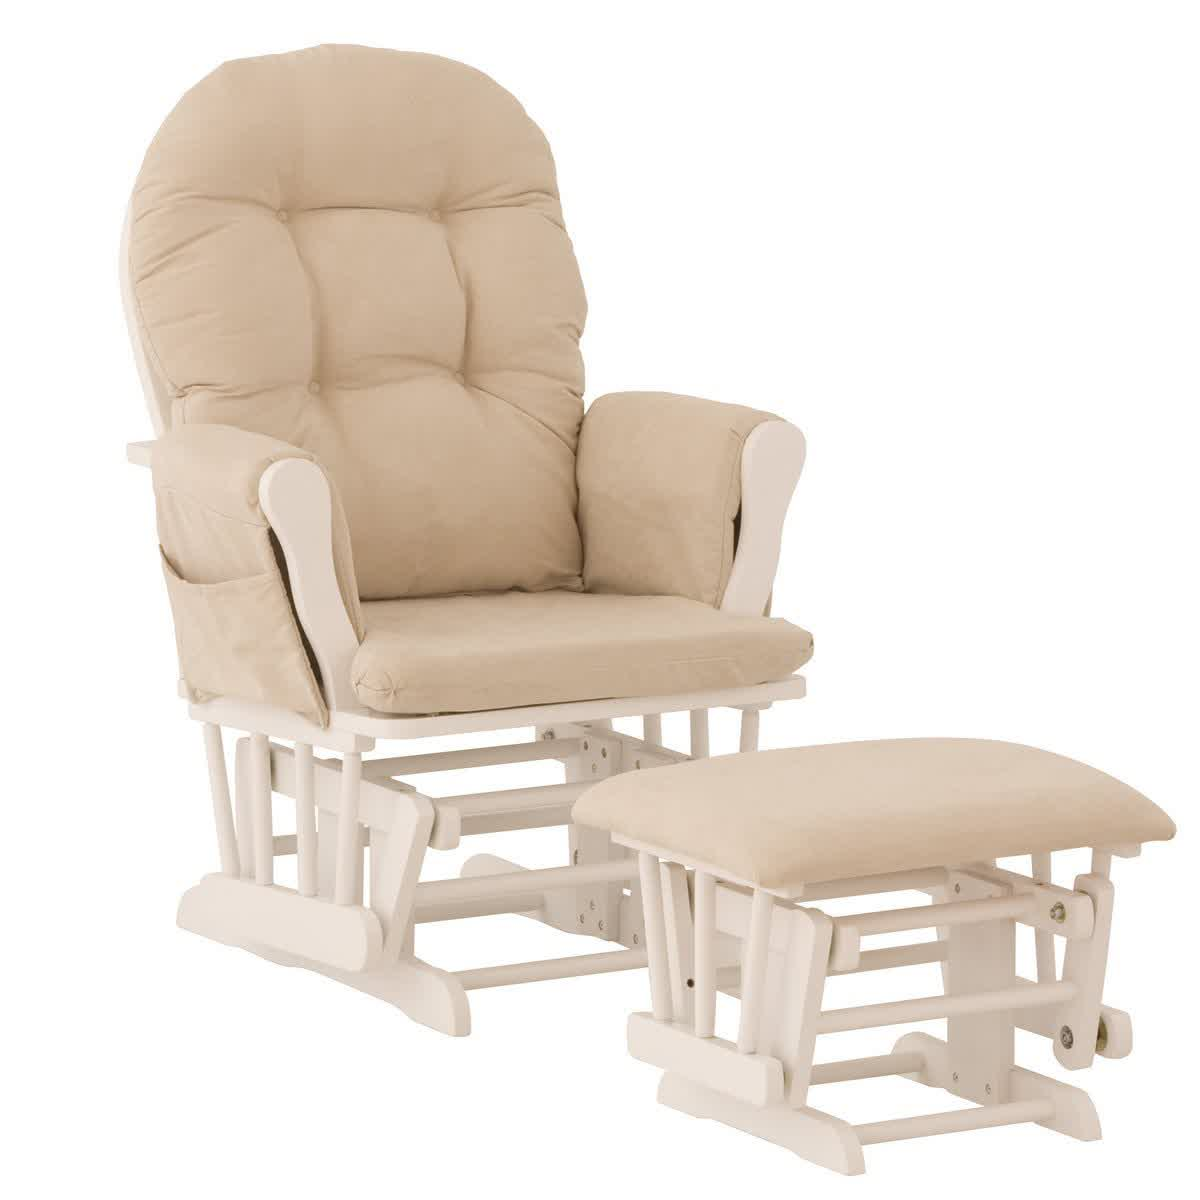 Picture of: Best Nursery Recliner Image